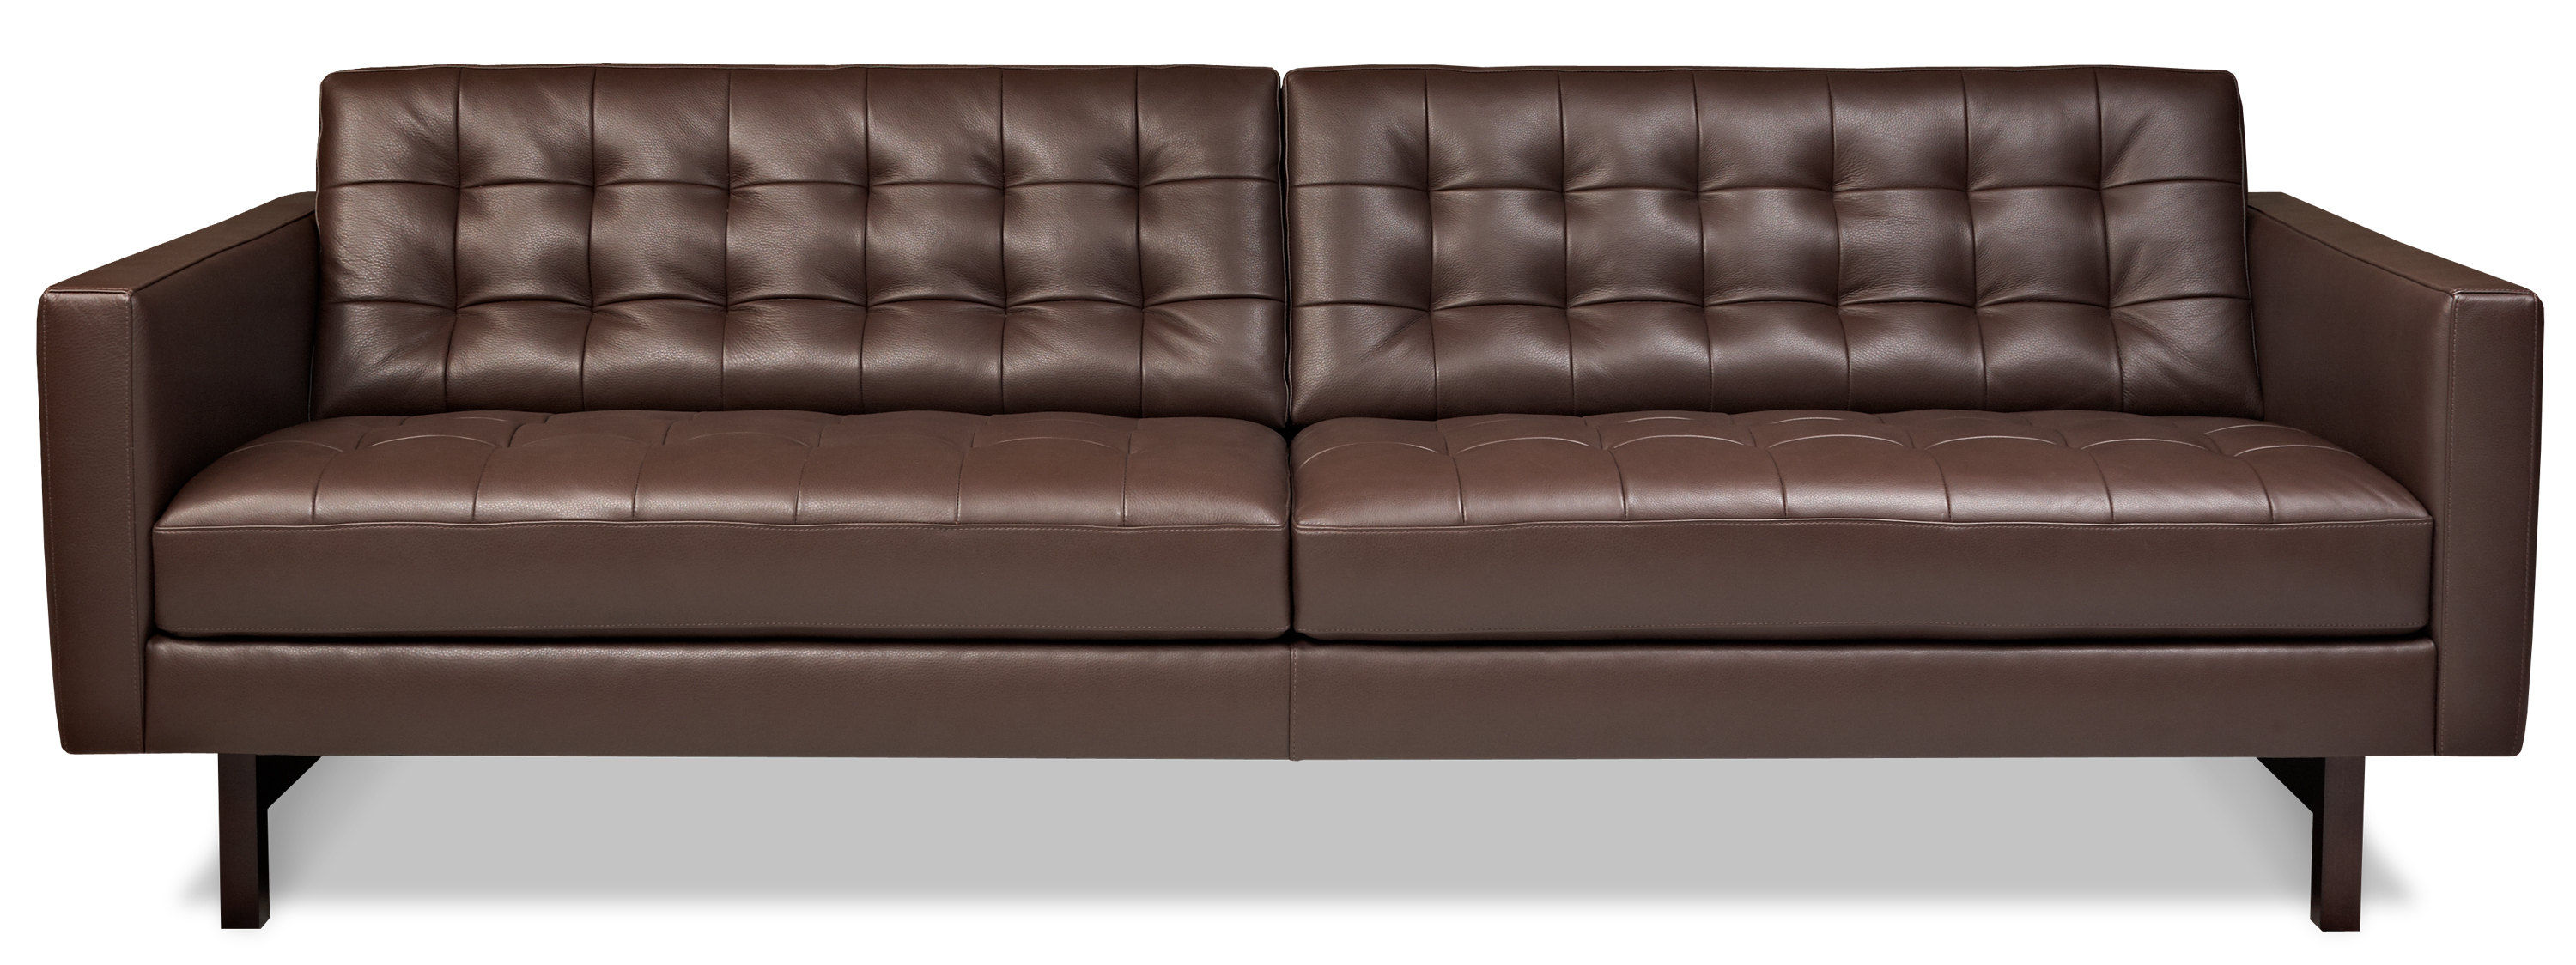 Parker Sofa American Leather | King Sofa Intended For Parker Sofa Chairs (Image 20 of 25)